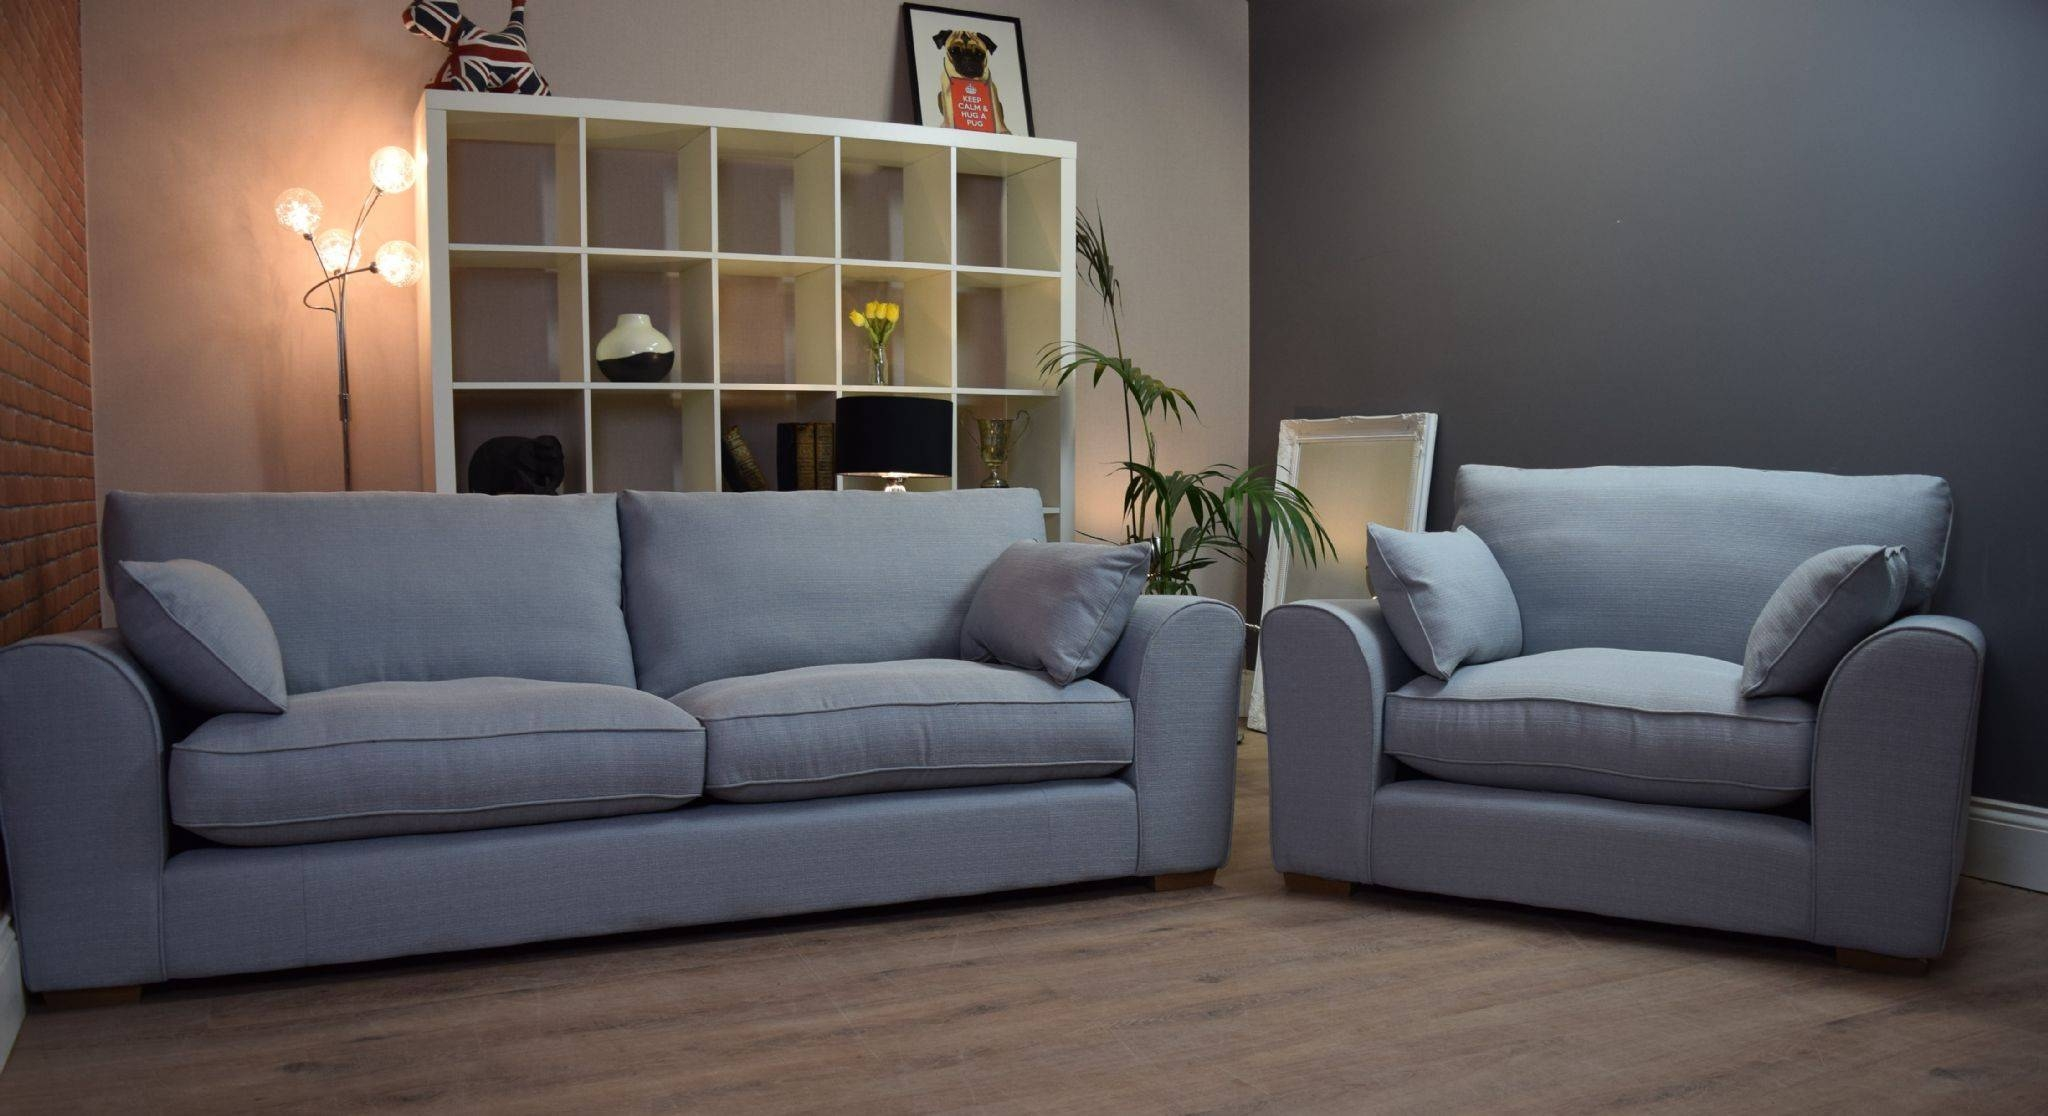 Best 30 of 3 Seater Sofa and Cuddle Chairs